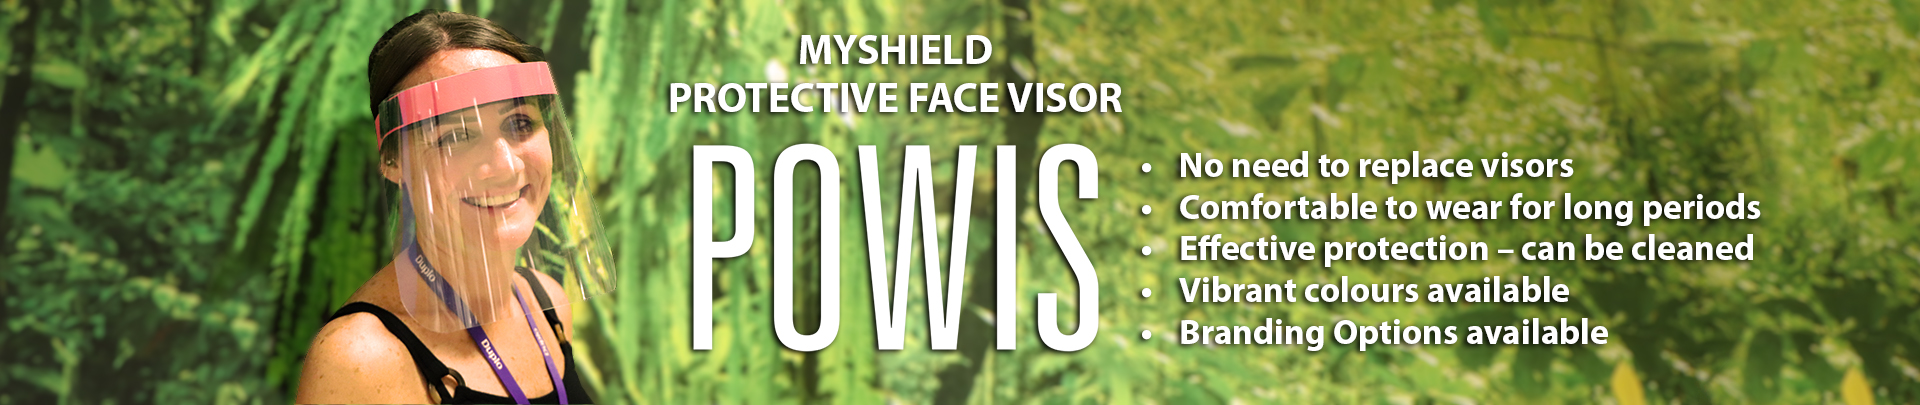 NEW MyShield protective face visors